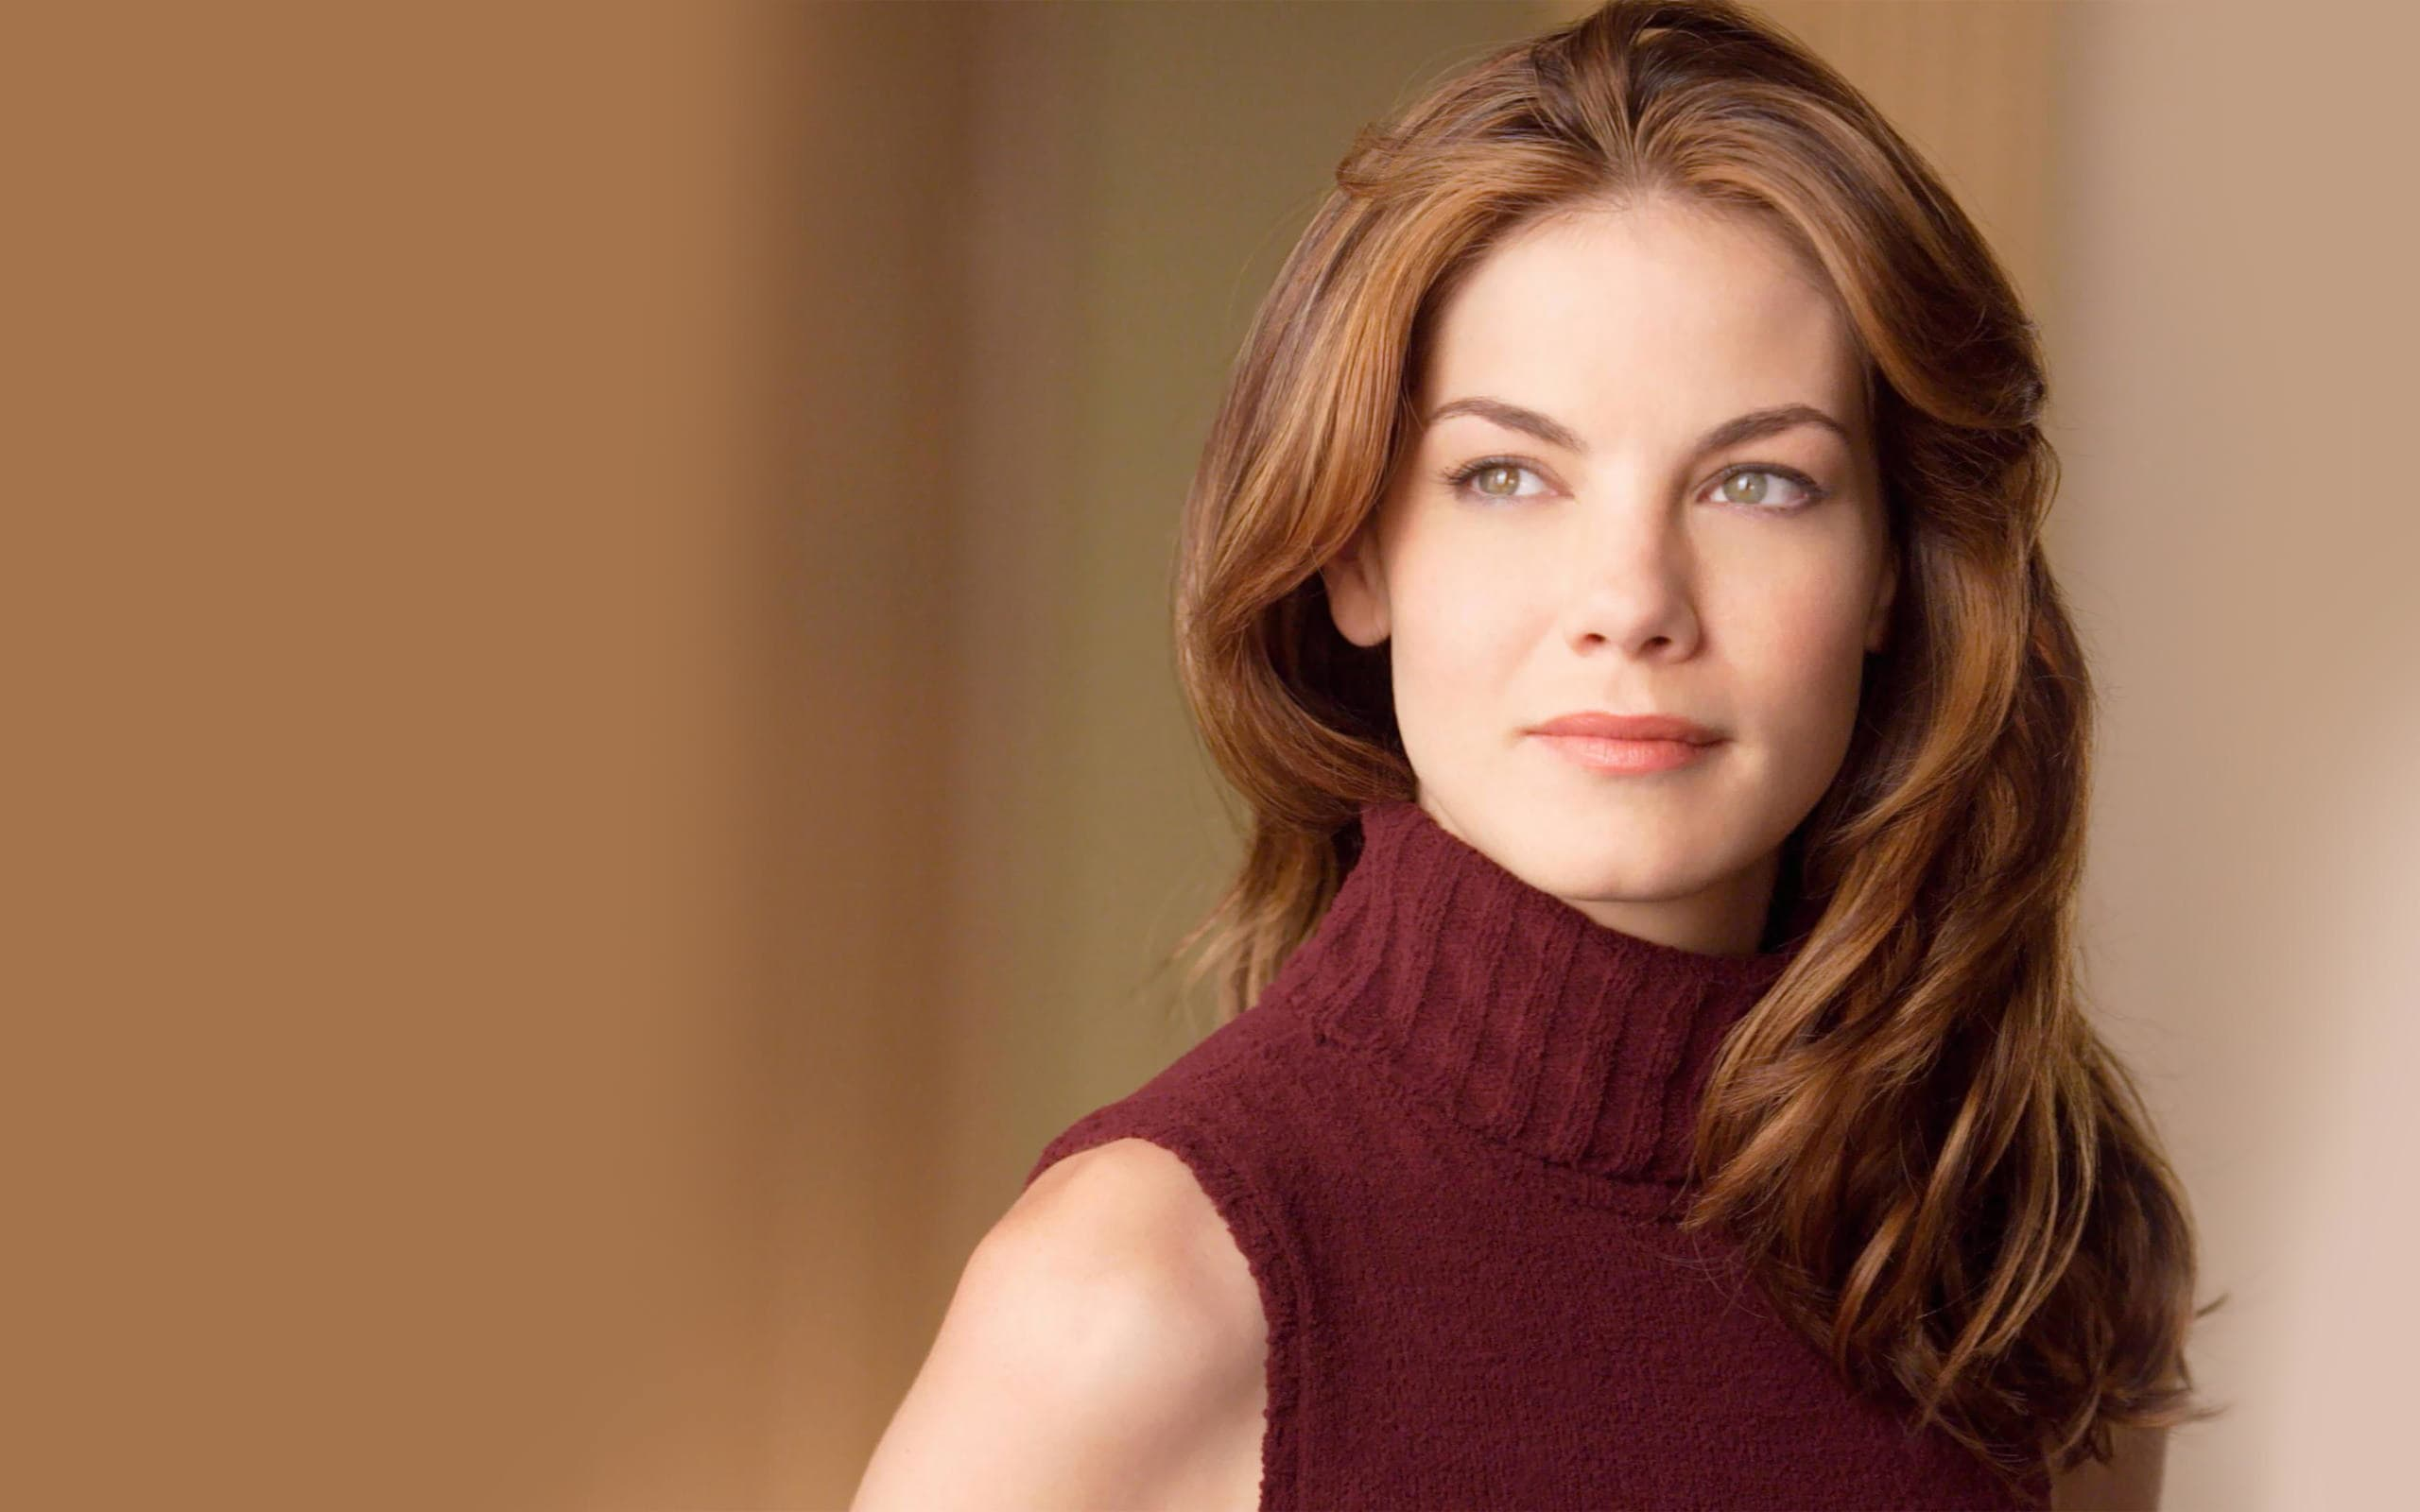 Michelle Monaghan Wallpapers and Background Images   stmednet 2560x1600